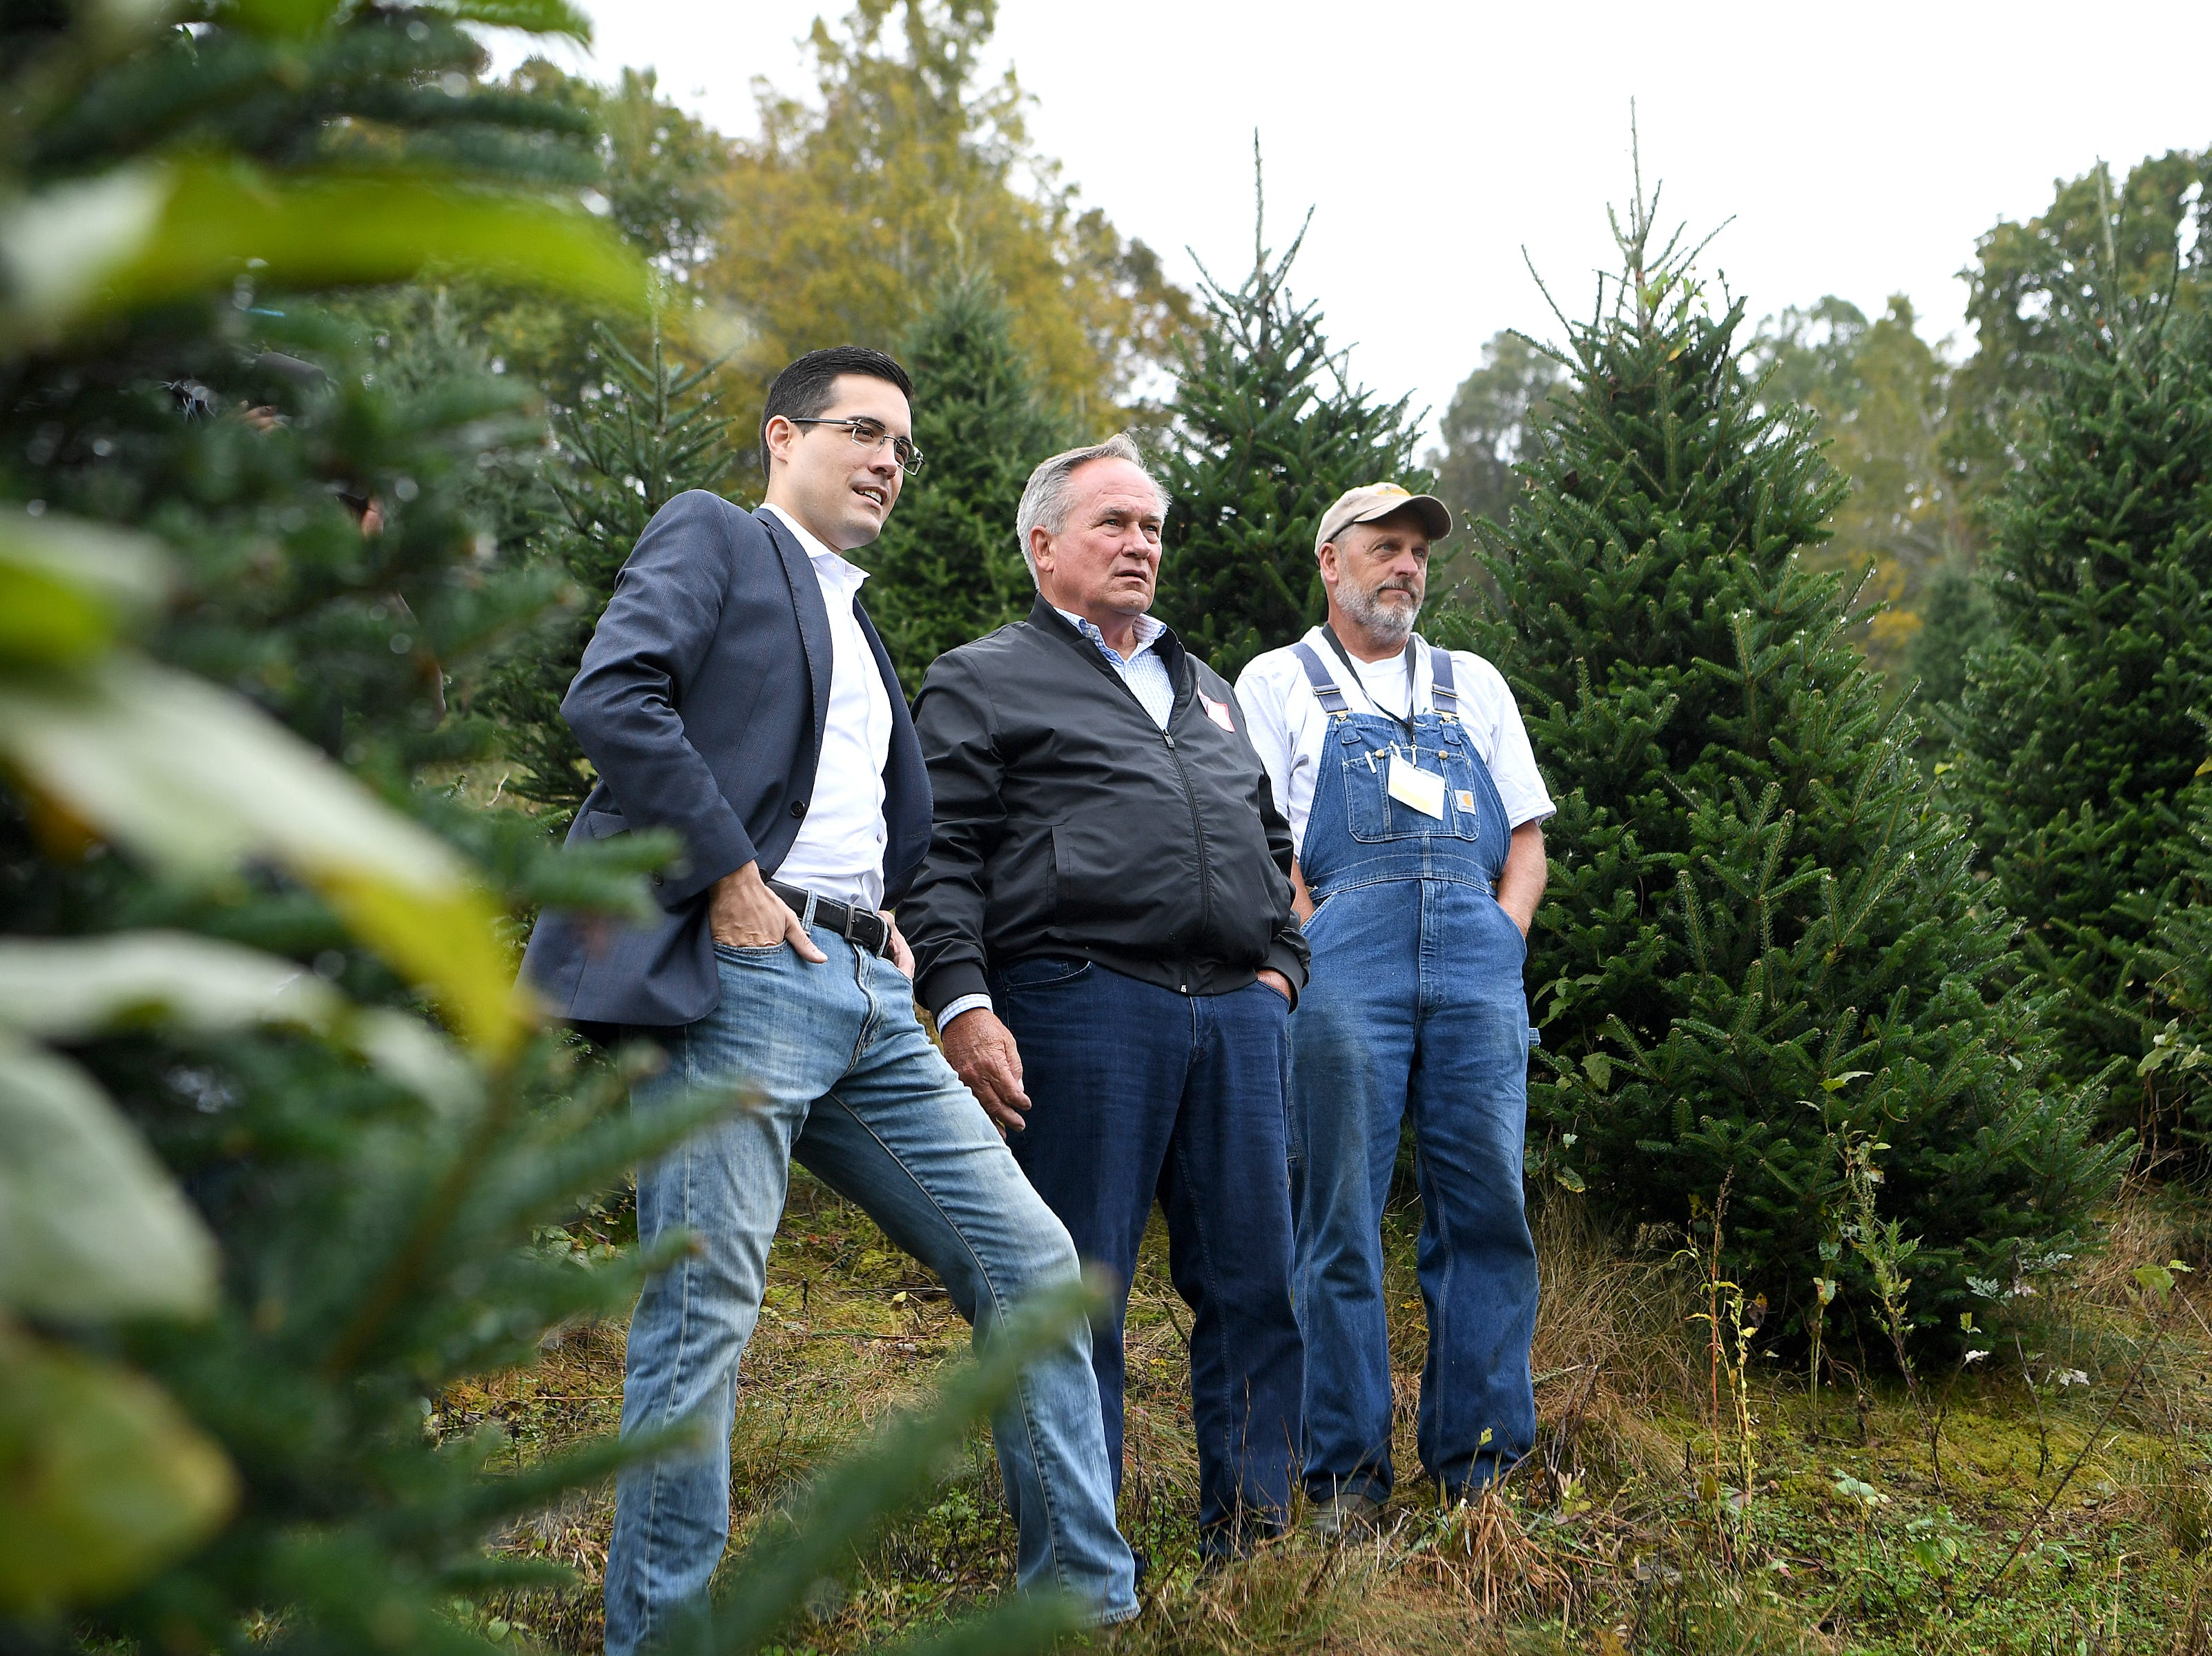 White House chief usher Timothy Harleth, left, and superintendent of grounds Dale Haney, center, look at one of Avery County Christmas tree grower Larry Smith's, right, trees as they search for the perfect one to display in the Blue Room of the White House during an event at his Newland farm on Sept. 24, 2018. Smith was named this year's Grand Champion in the National Christmas Tree Association's Christmas tree contest and with the title comes the honor of presenting a tree to the White House.